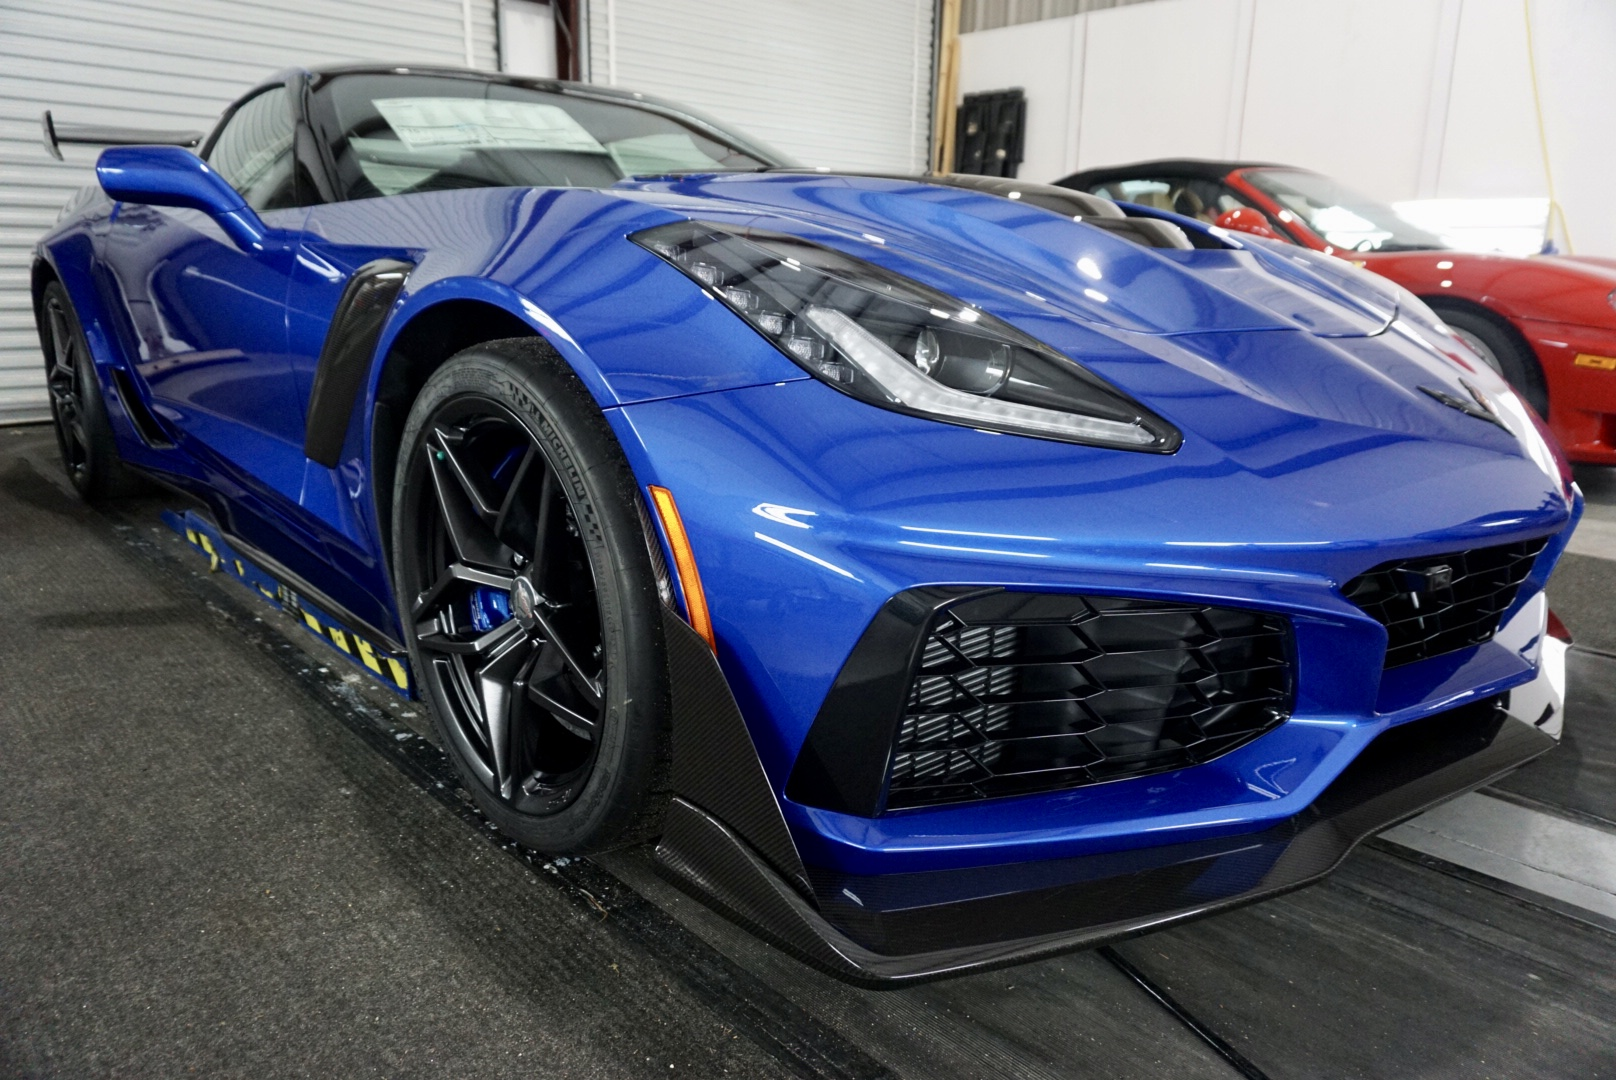 Photo of a New Car Preparation of a 2019 Chevrolet Corvette